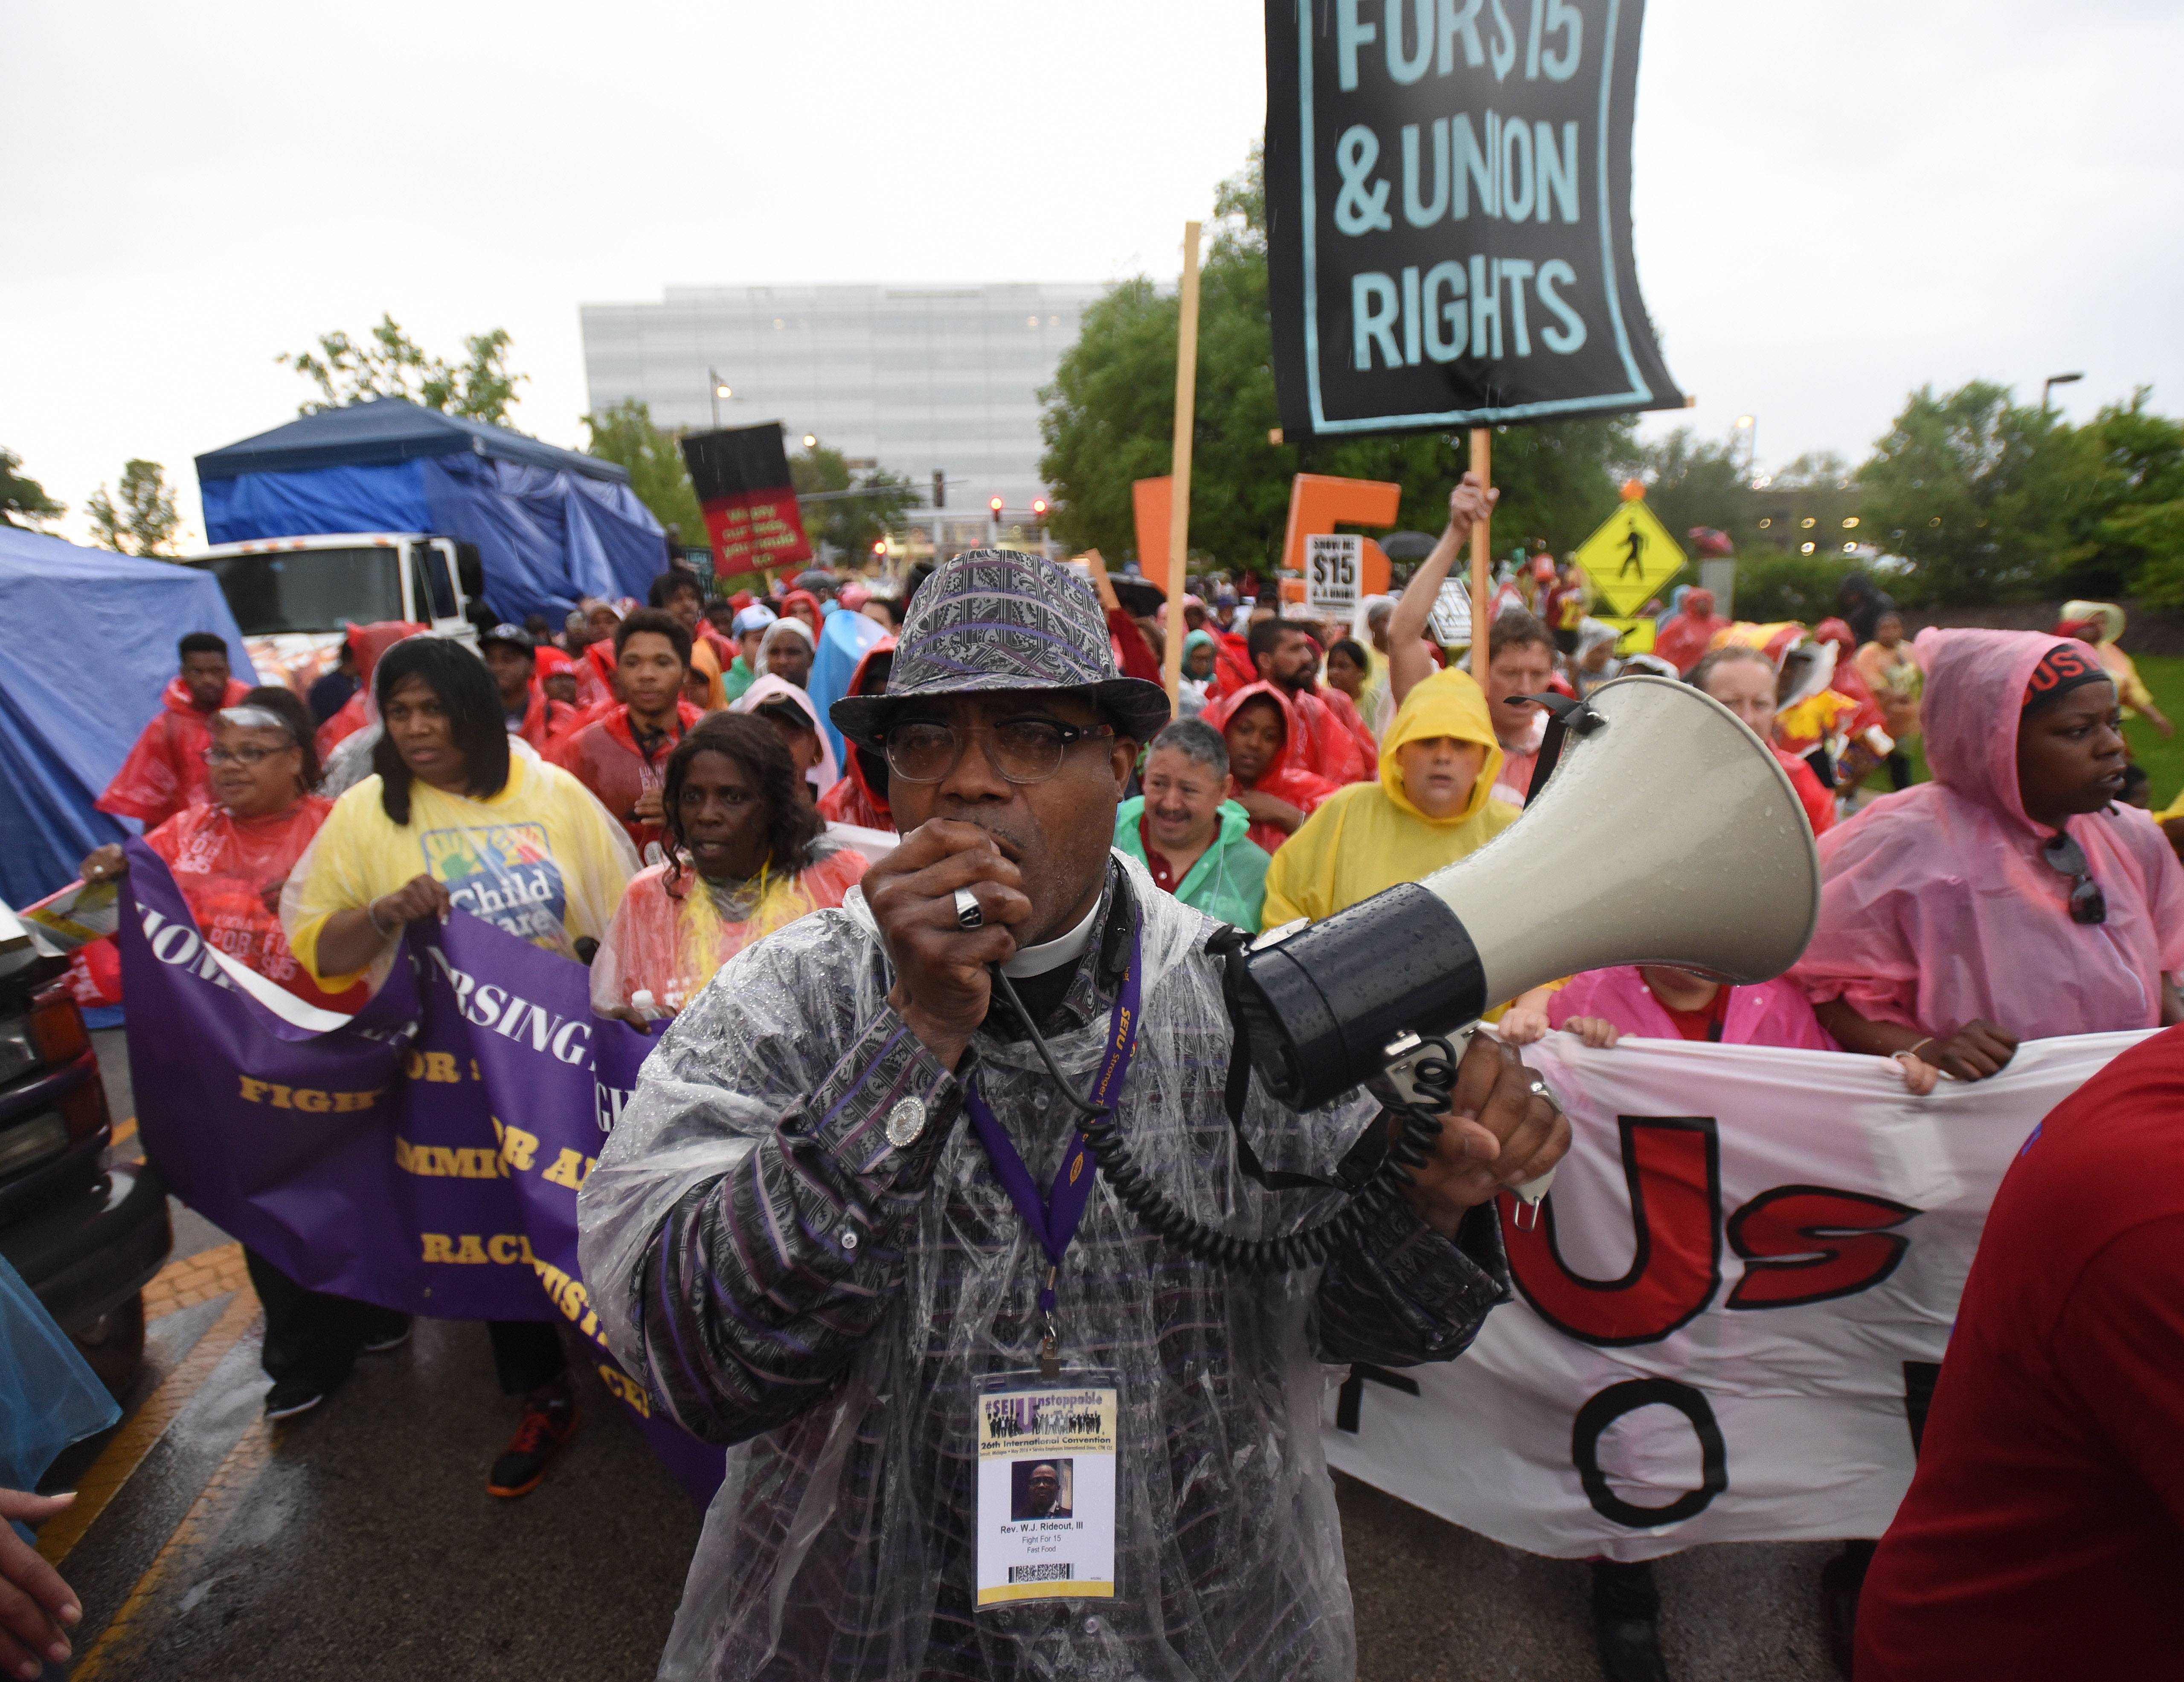 The Rev W.J. Rideout took charge of nearly 3,000 protesters during a super sized protest in the rain on Wednesday evening at McDonald's U.S. Headquarters in Oakbrook. Cooks and cashiers were protesting low wages in hopes of getting a pay increase to $15.00 an hour like in New York and California.